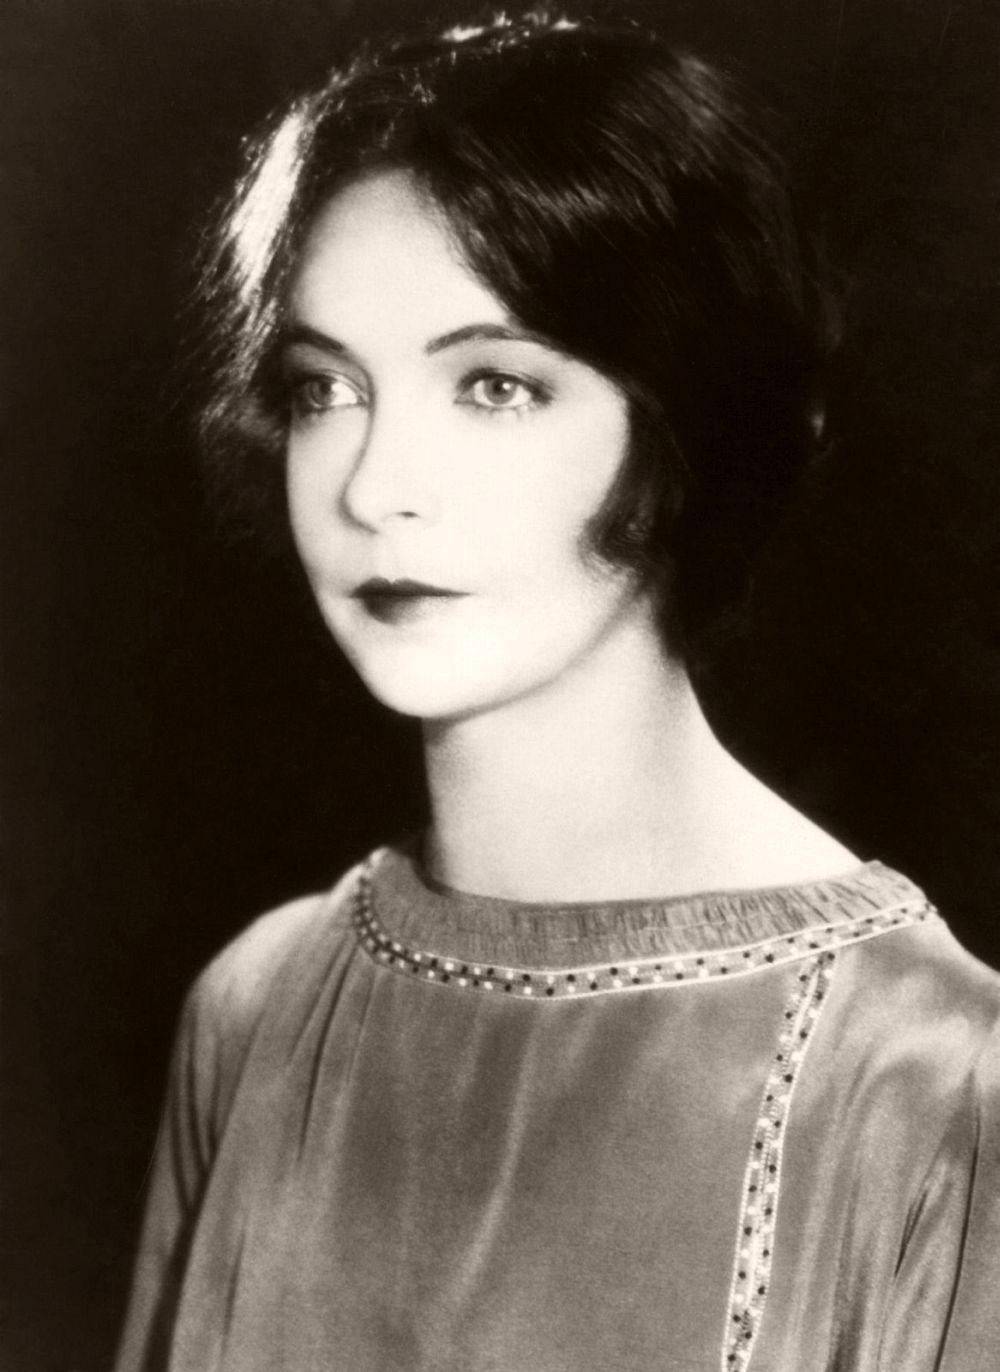 1923: Lillian Diana Gish, originally Lillian de Guiche (1893 - 1993), made her stage debut at the age of 5. She played a lot of waif type heroines during her silent film career but never quite made the successful transition to talking pictures. An Academy Award was presented to her in 1971.